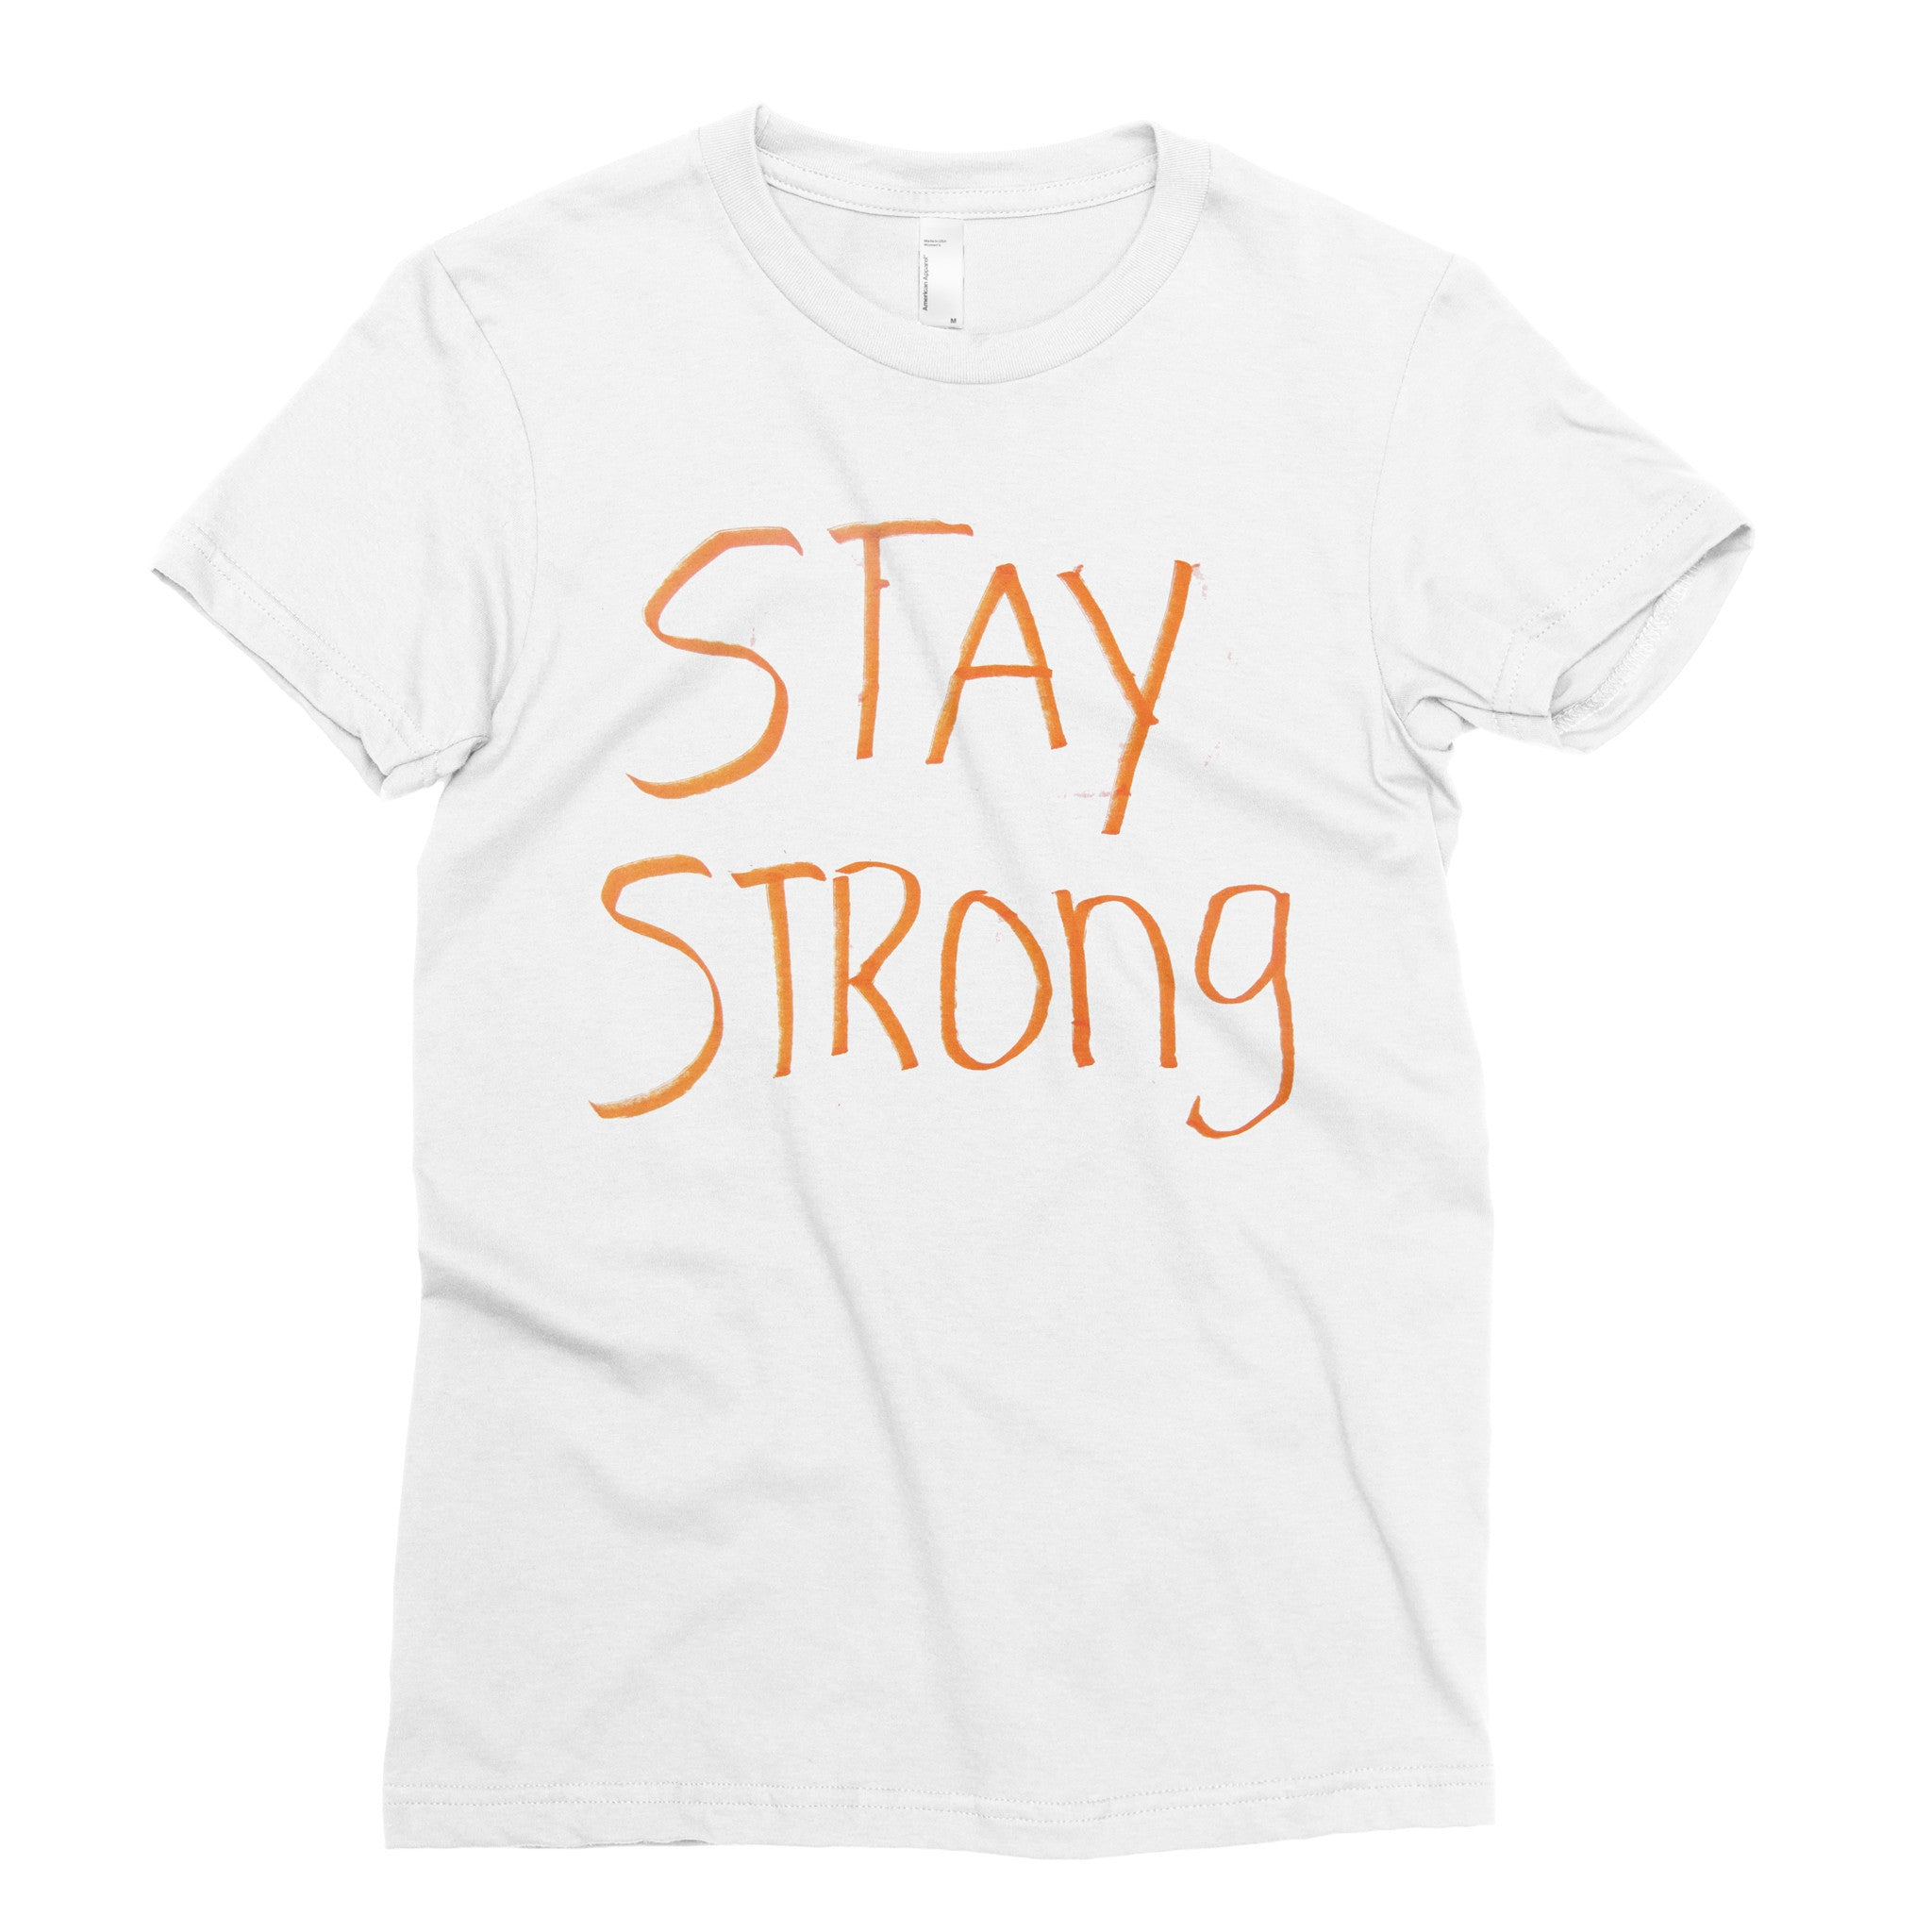 Stay Strong - Adult T-shirt - Rightside Shirts